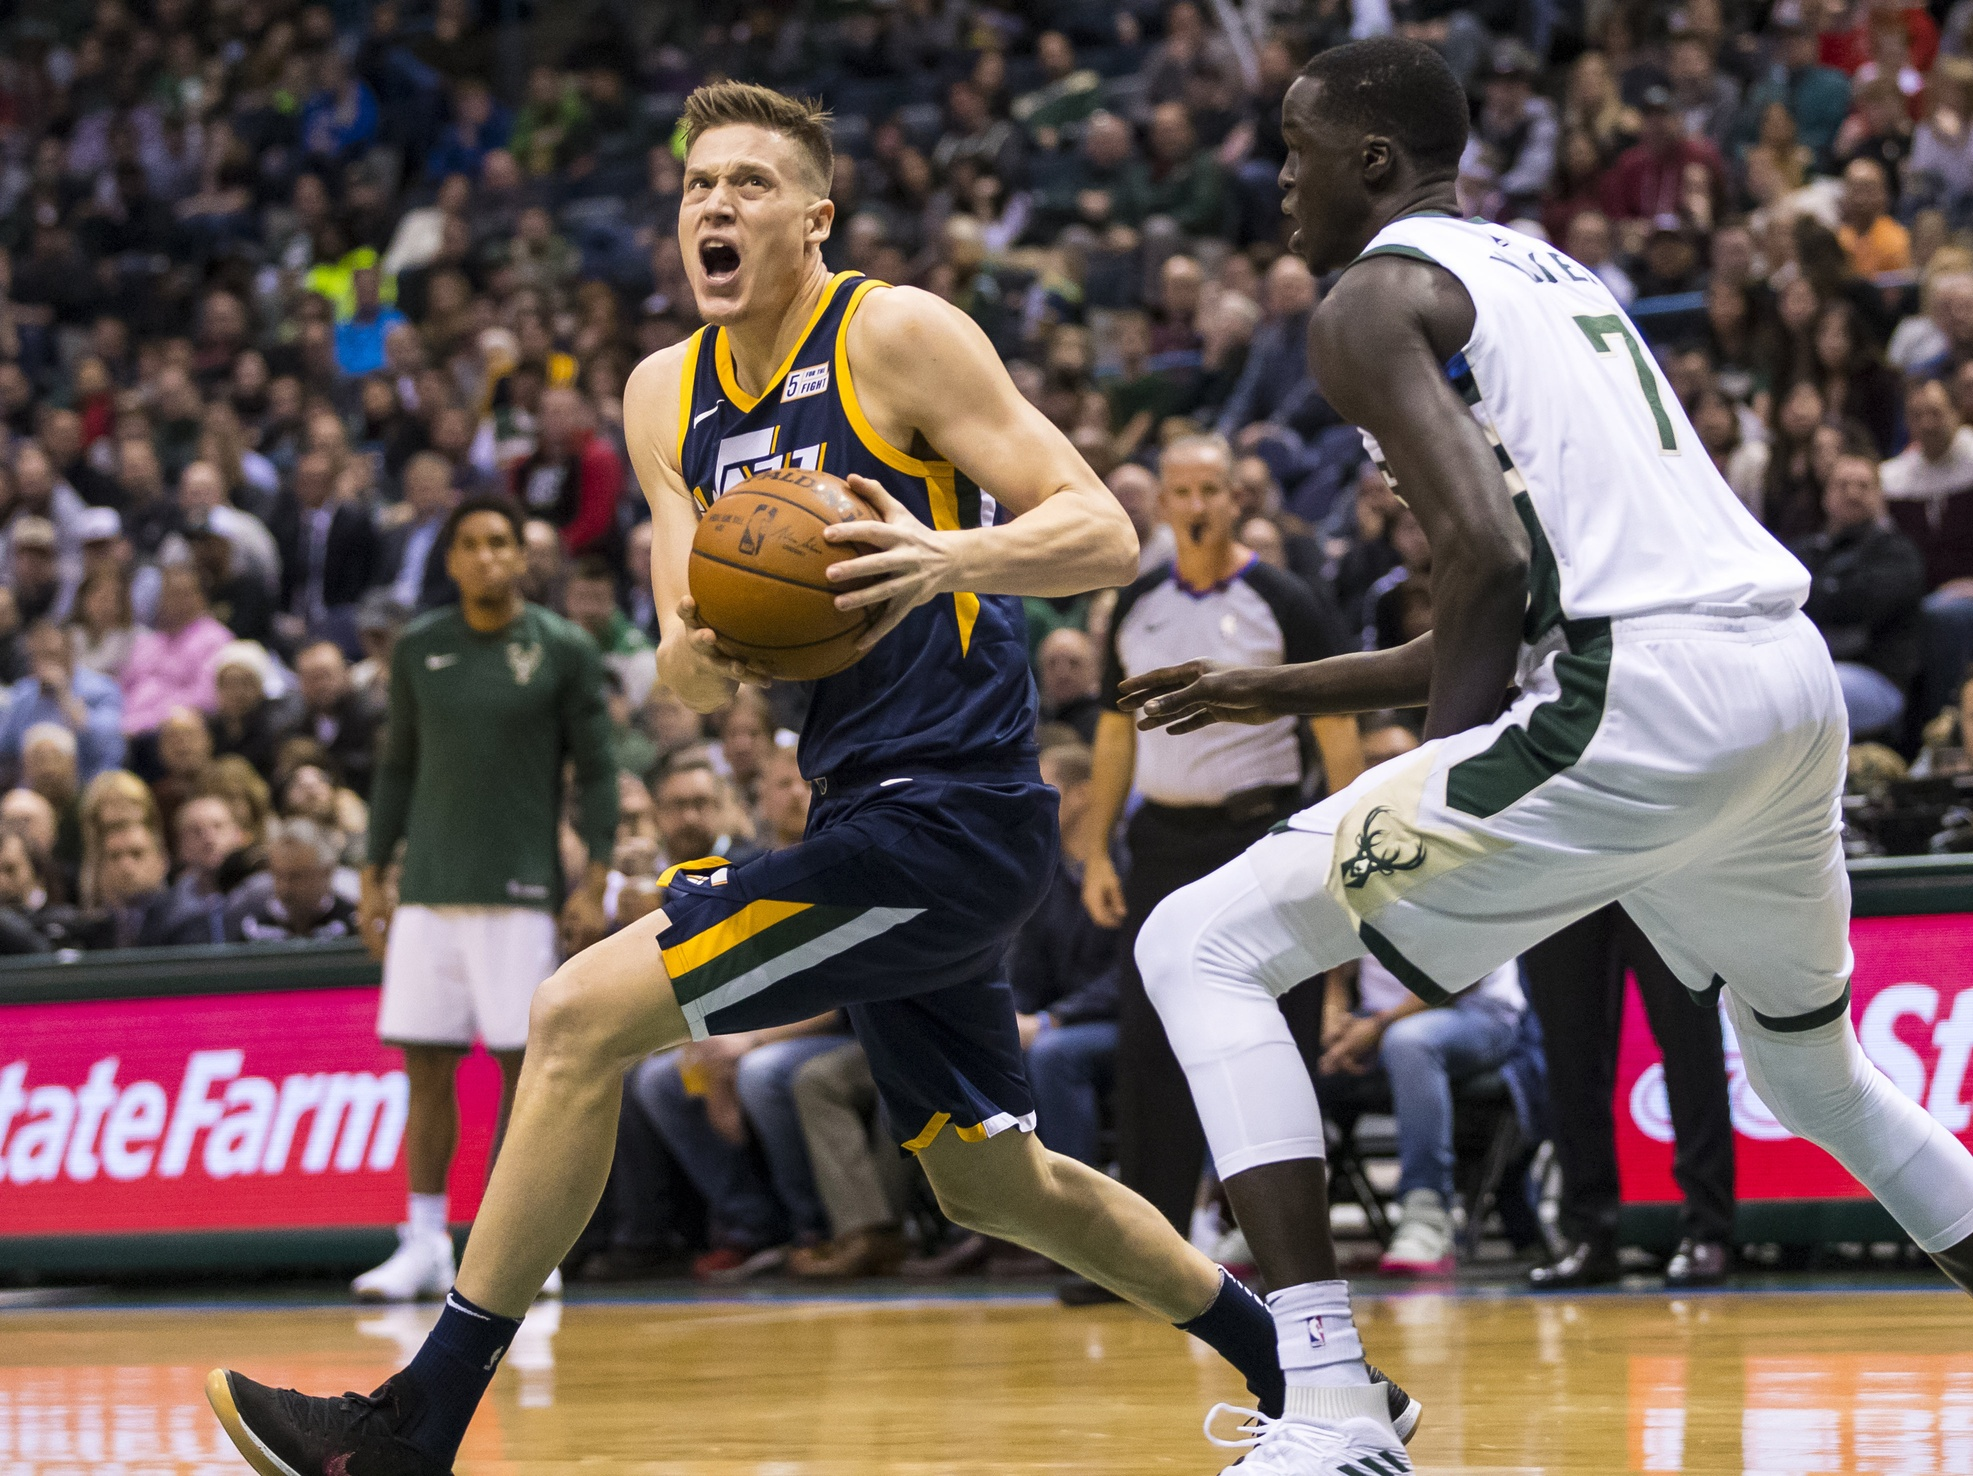 Jazz stroll into Boston for ... Jerebko revenge game